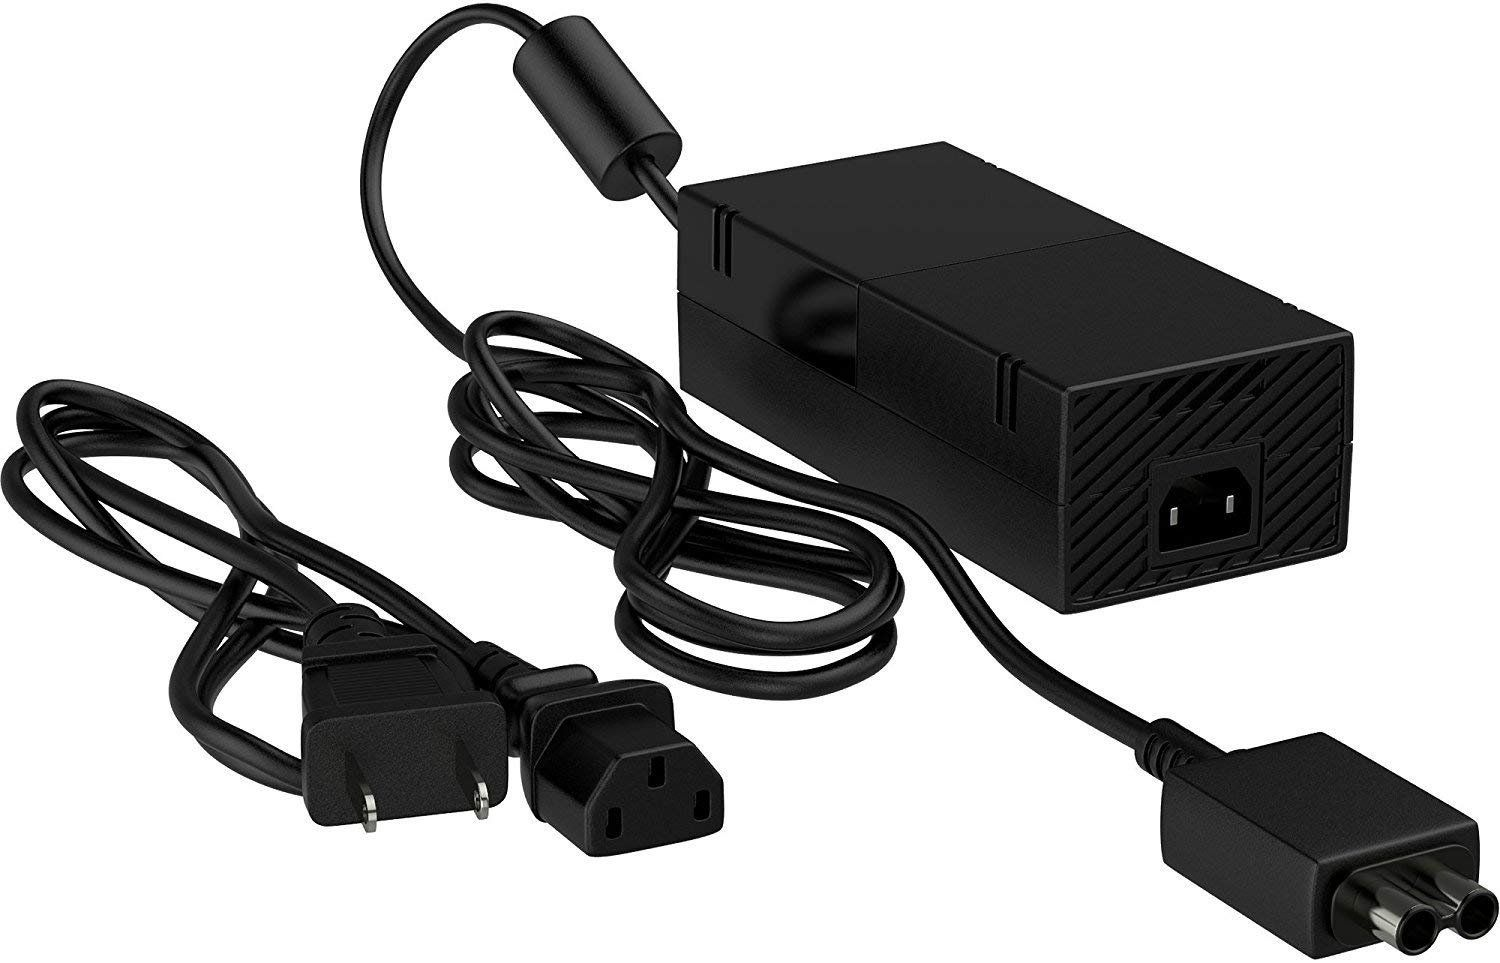 medium resolution of ortz xbox one power supply enhanced quiet version ac adapter cord best for charging brick style great charger accessory kit with cable version